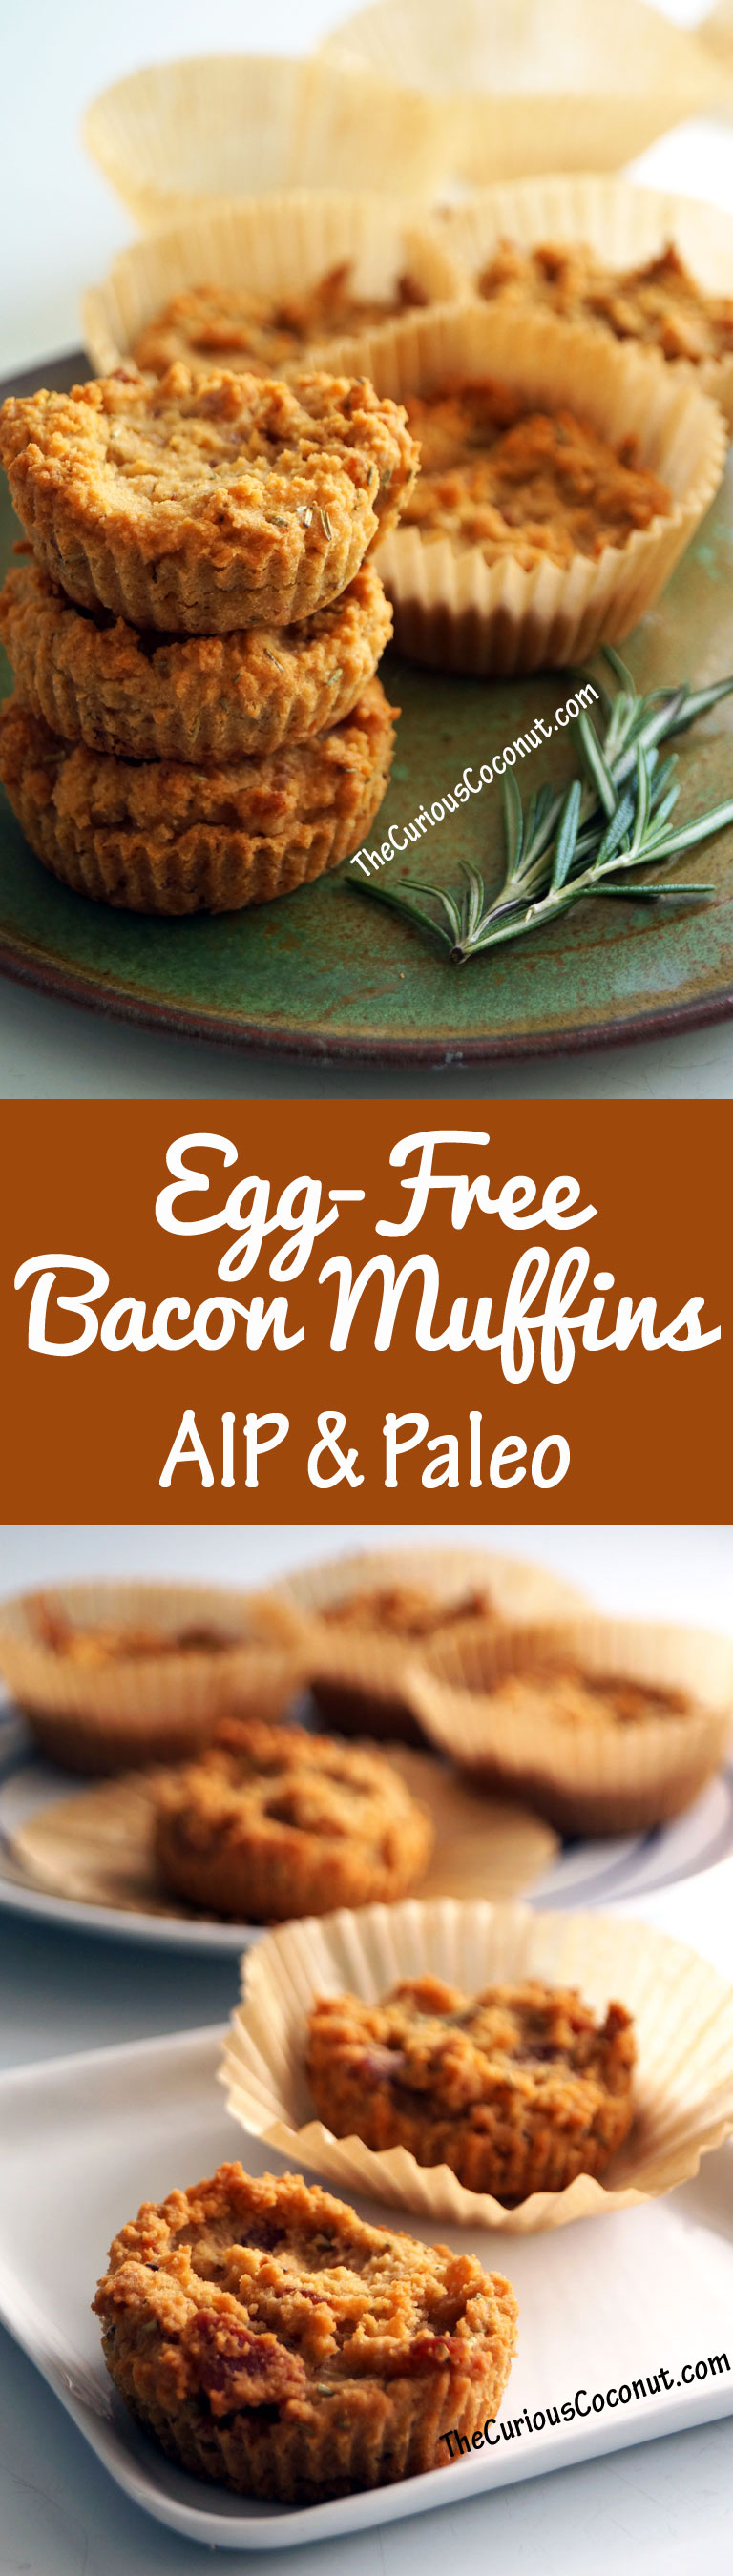 Egg-Free Bacon Herb Muffins. Protein-packed, delicious, perfect for the #AIP paleo protocol. // TheCuriousCoconut.com